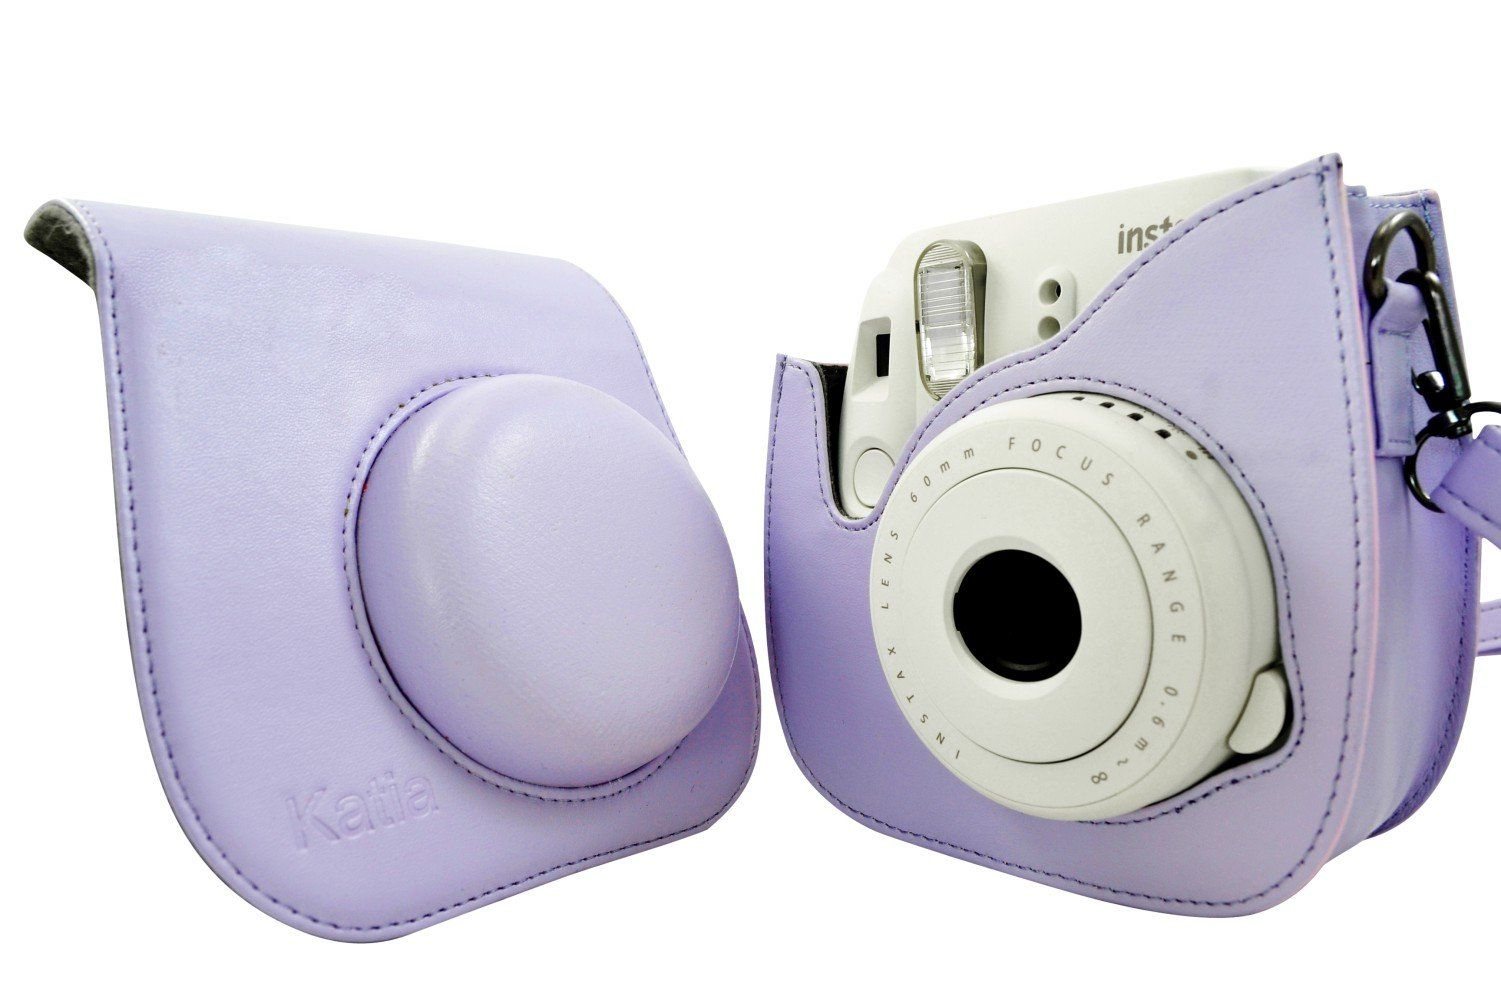 Katia Pu Leather Fuji Fujifilm Instax Mini 8 Case Bag With